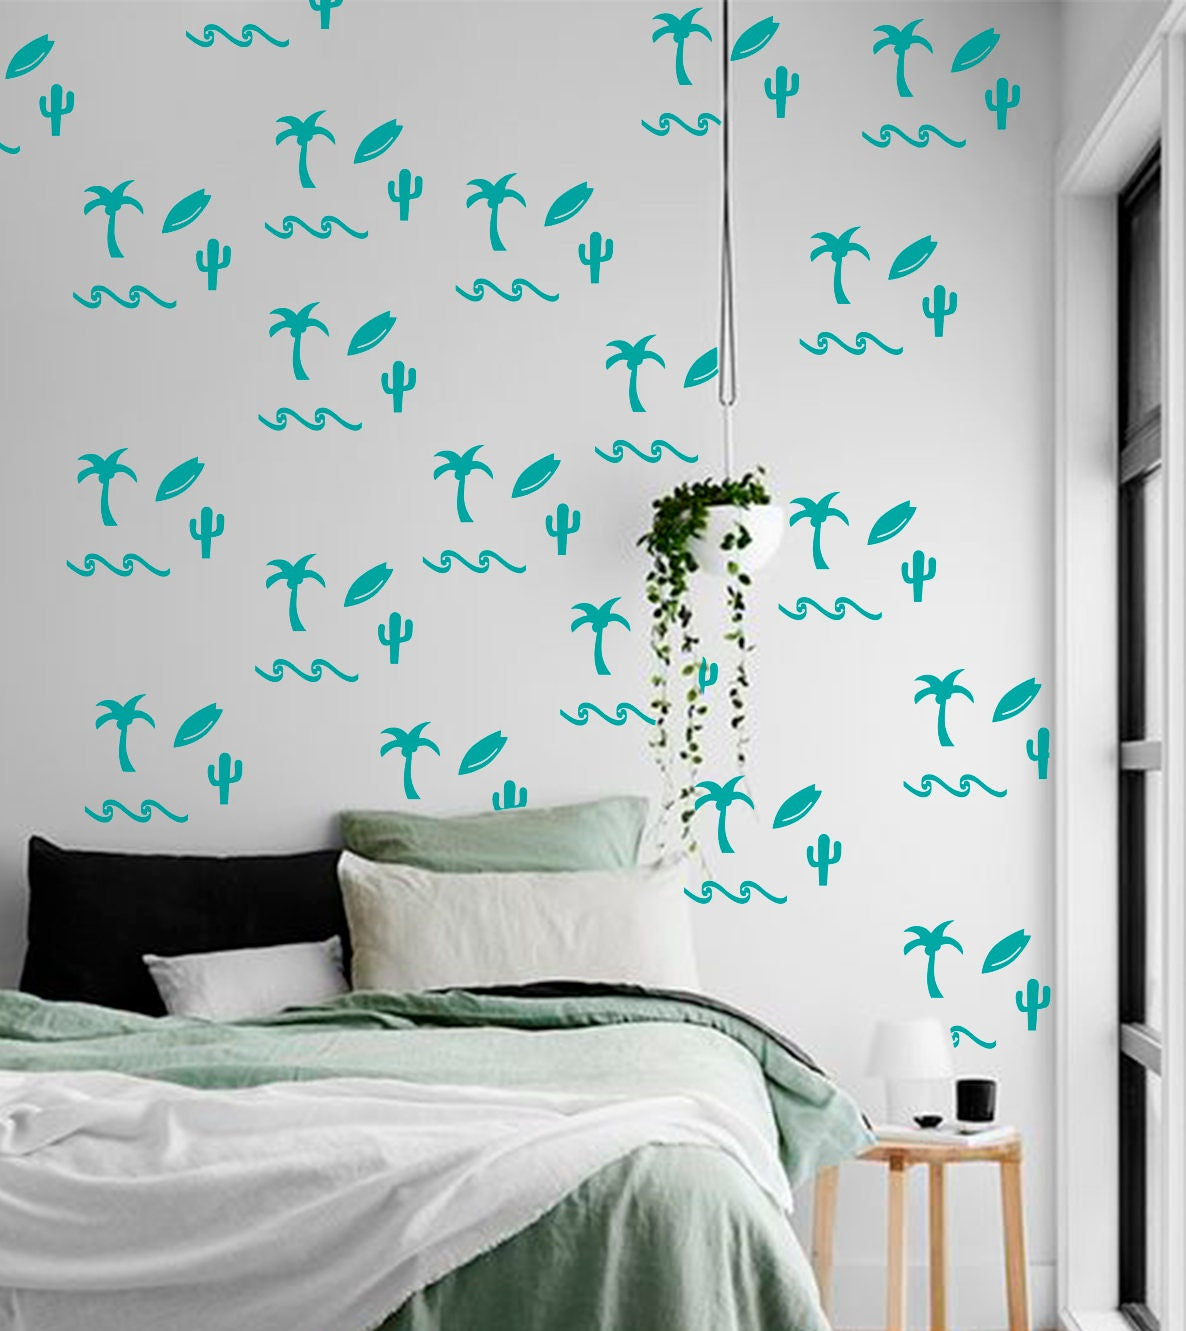 Beach Wall Decals Palm Tree Wall Decals Palm Vinyl Decals Sea